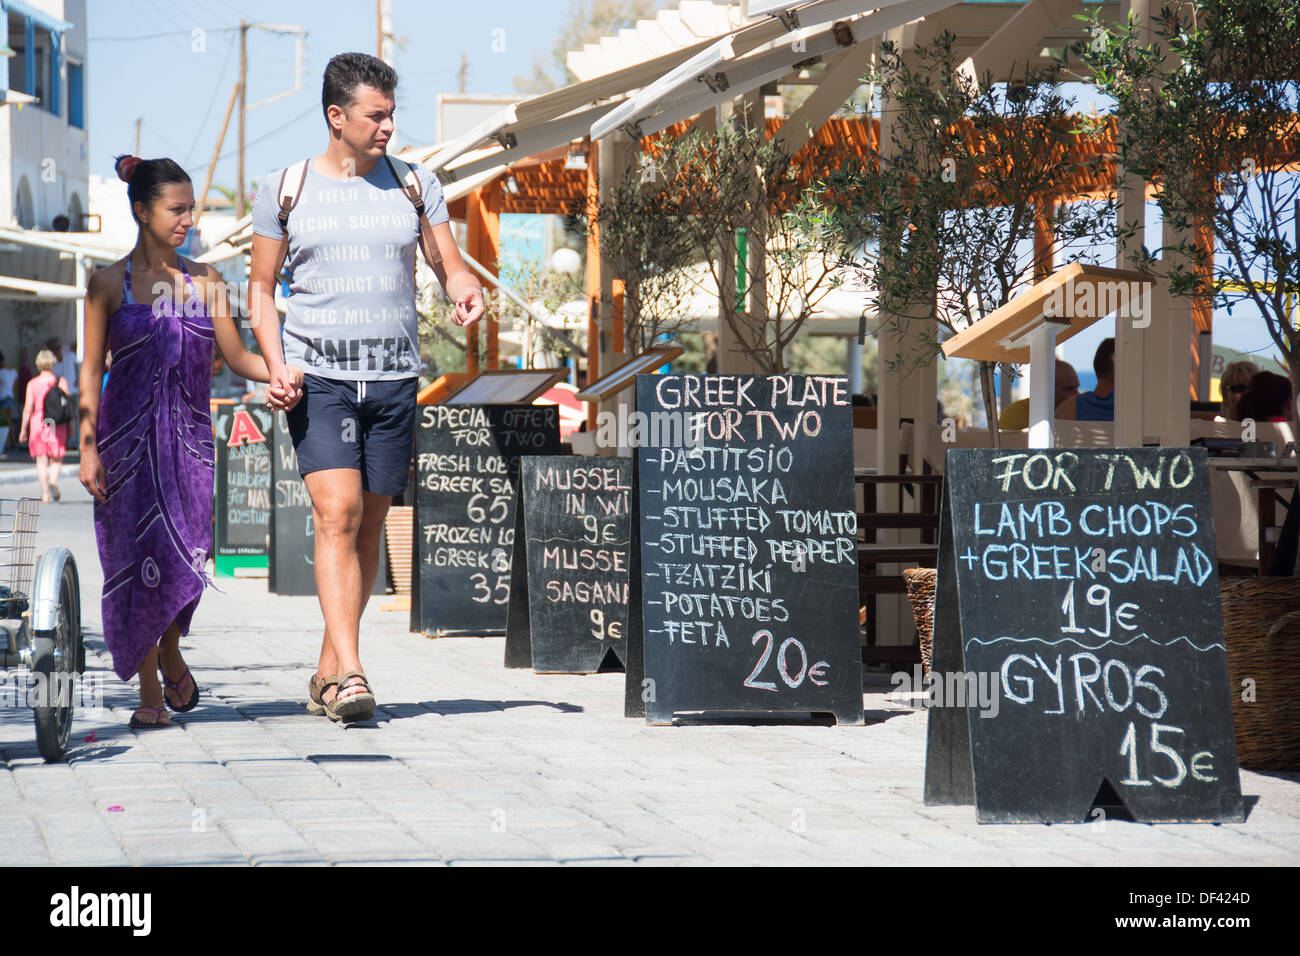 SANTORINI (THIRA), CYCLADES, GREECE. Holidaymakers walking past a taverna with blackboards advertising meal deals for two. - Stock Image